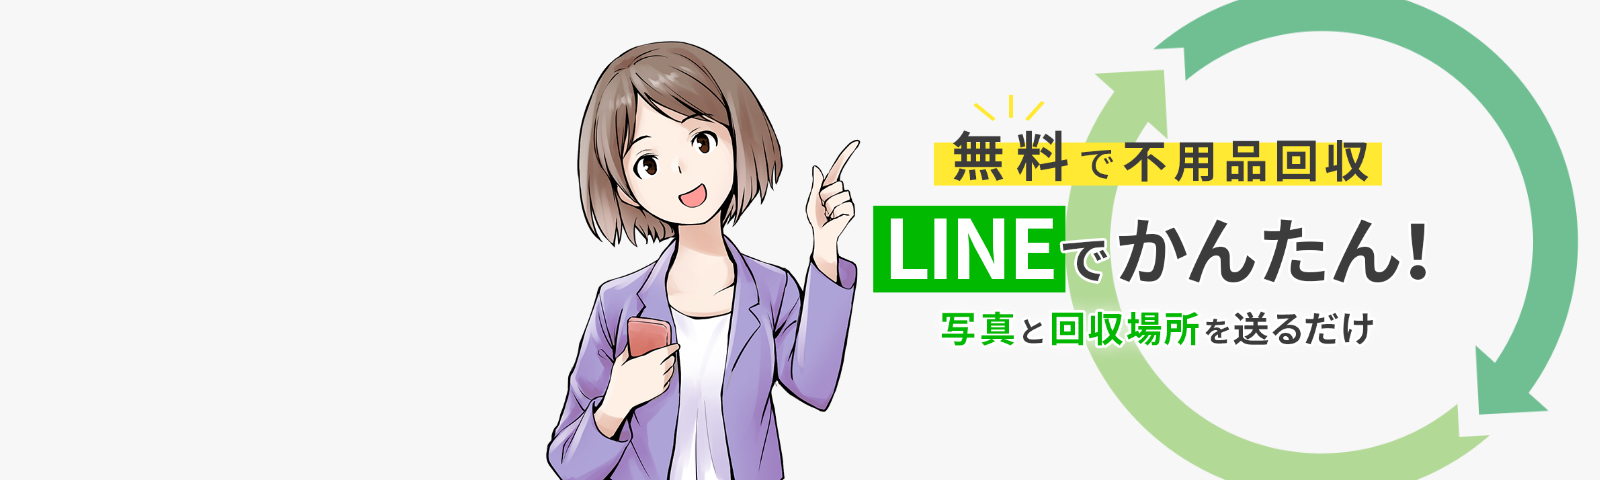 LINE無料回収サービス